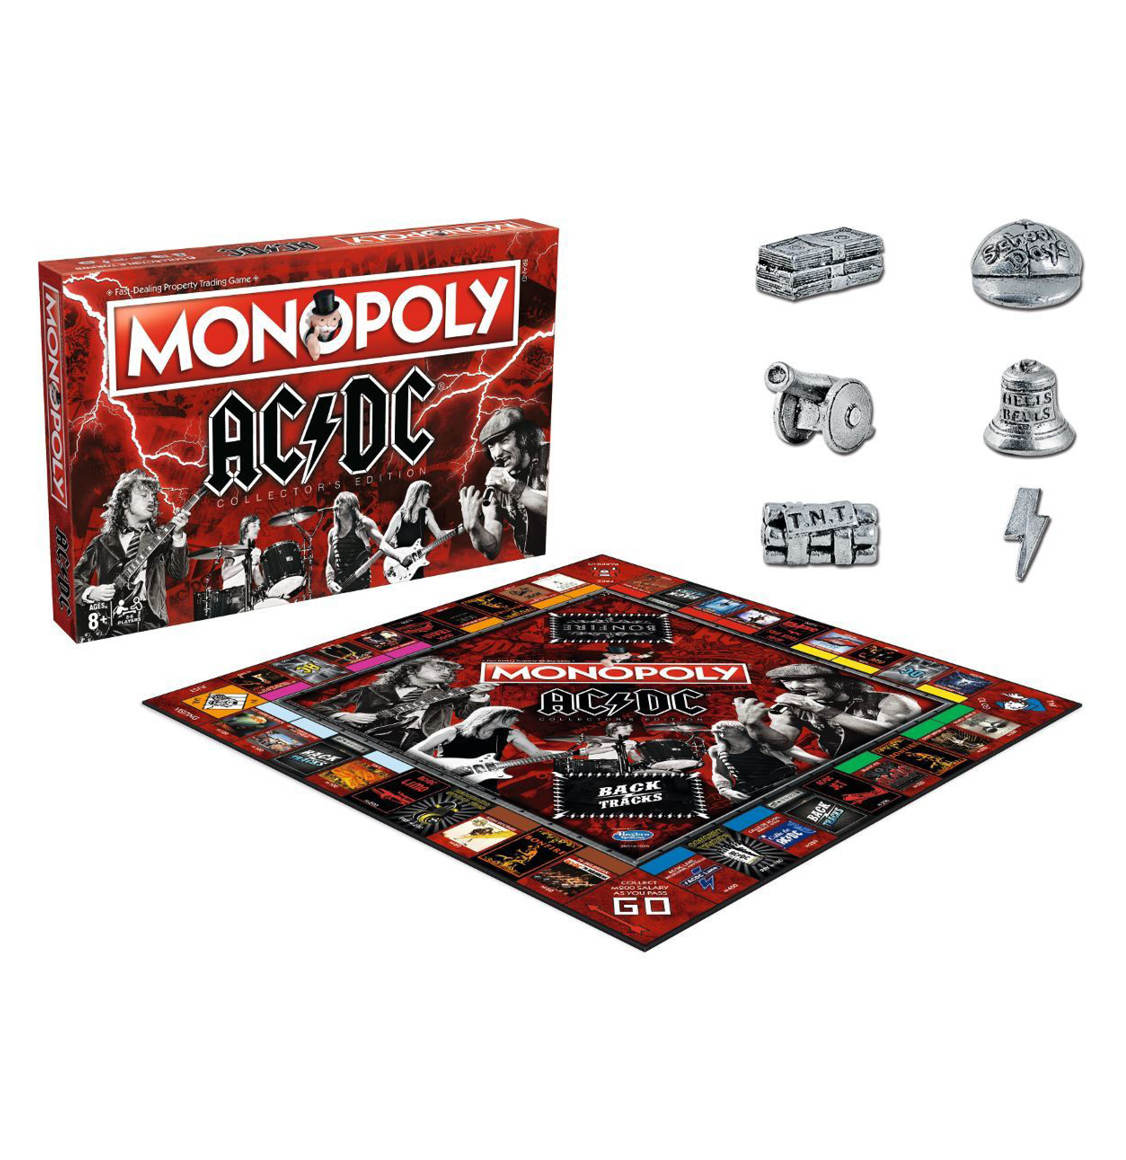 Monopoly ACDC Winning Moves English AC/DC Collector's Edition